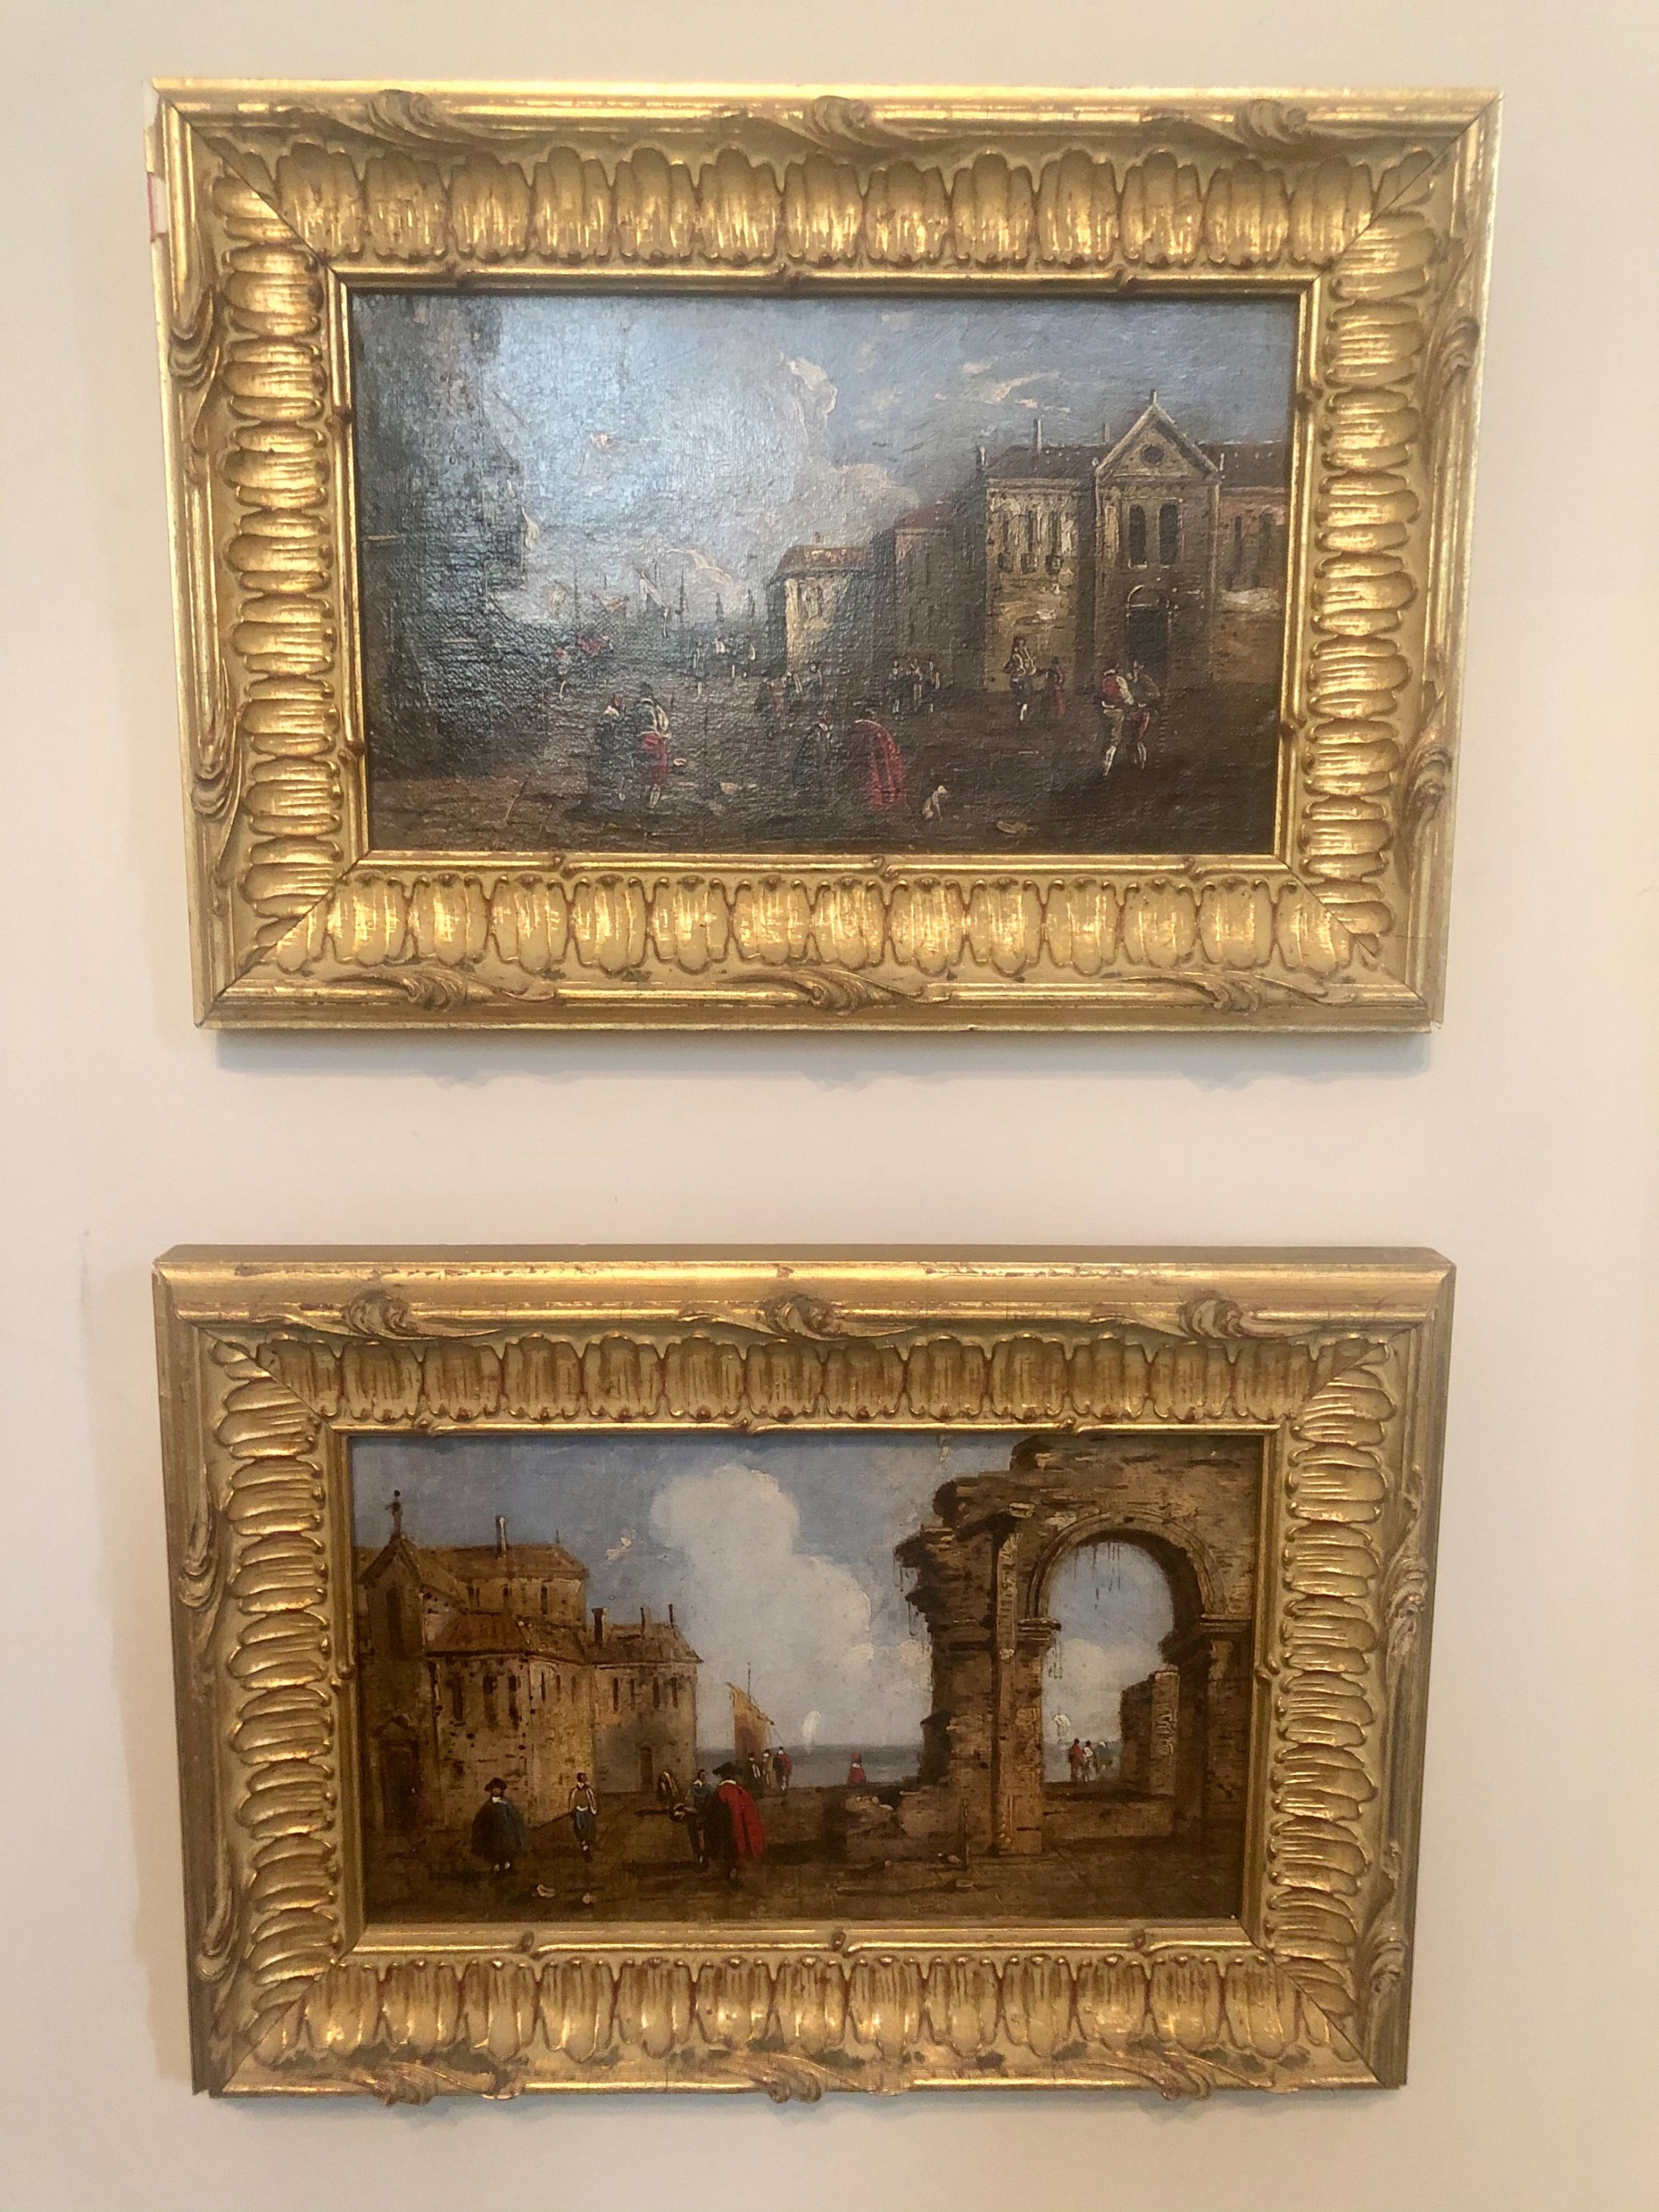 pair of capriciccos of venice oil paintings on canvas in the manner of francesco guardi early 19th c